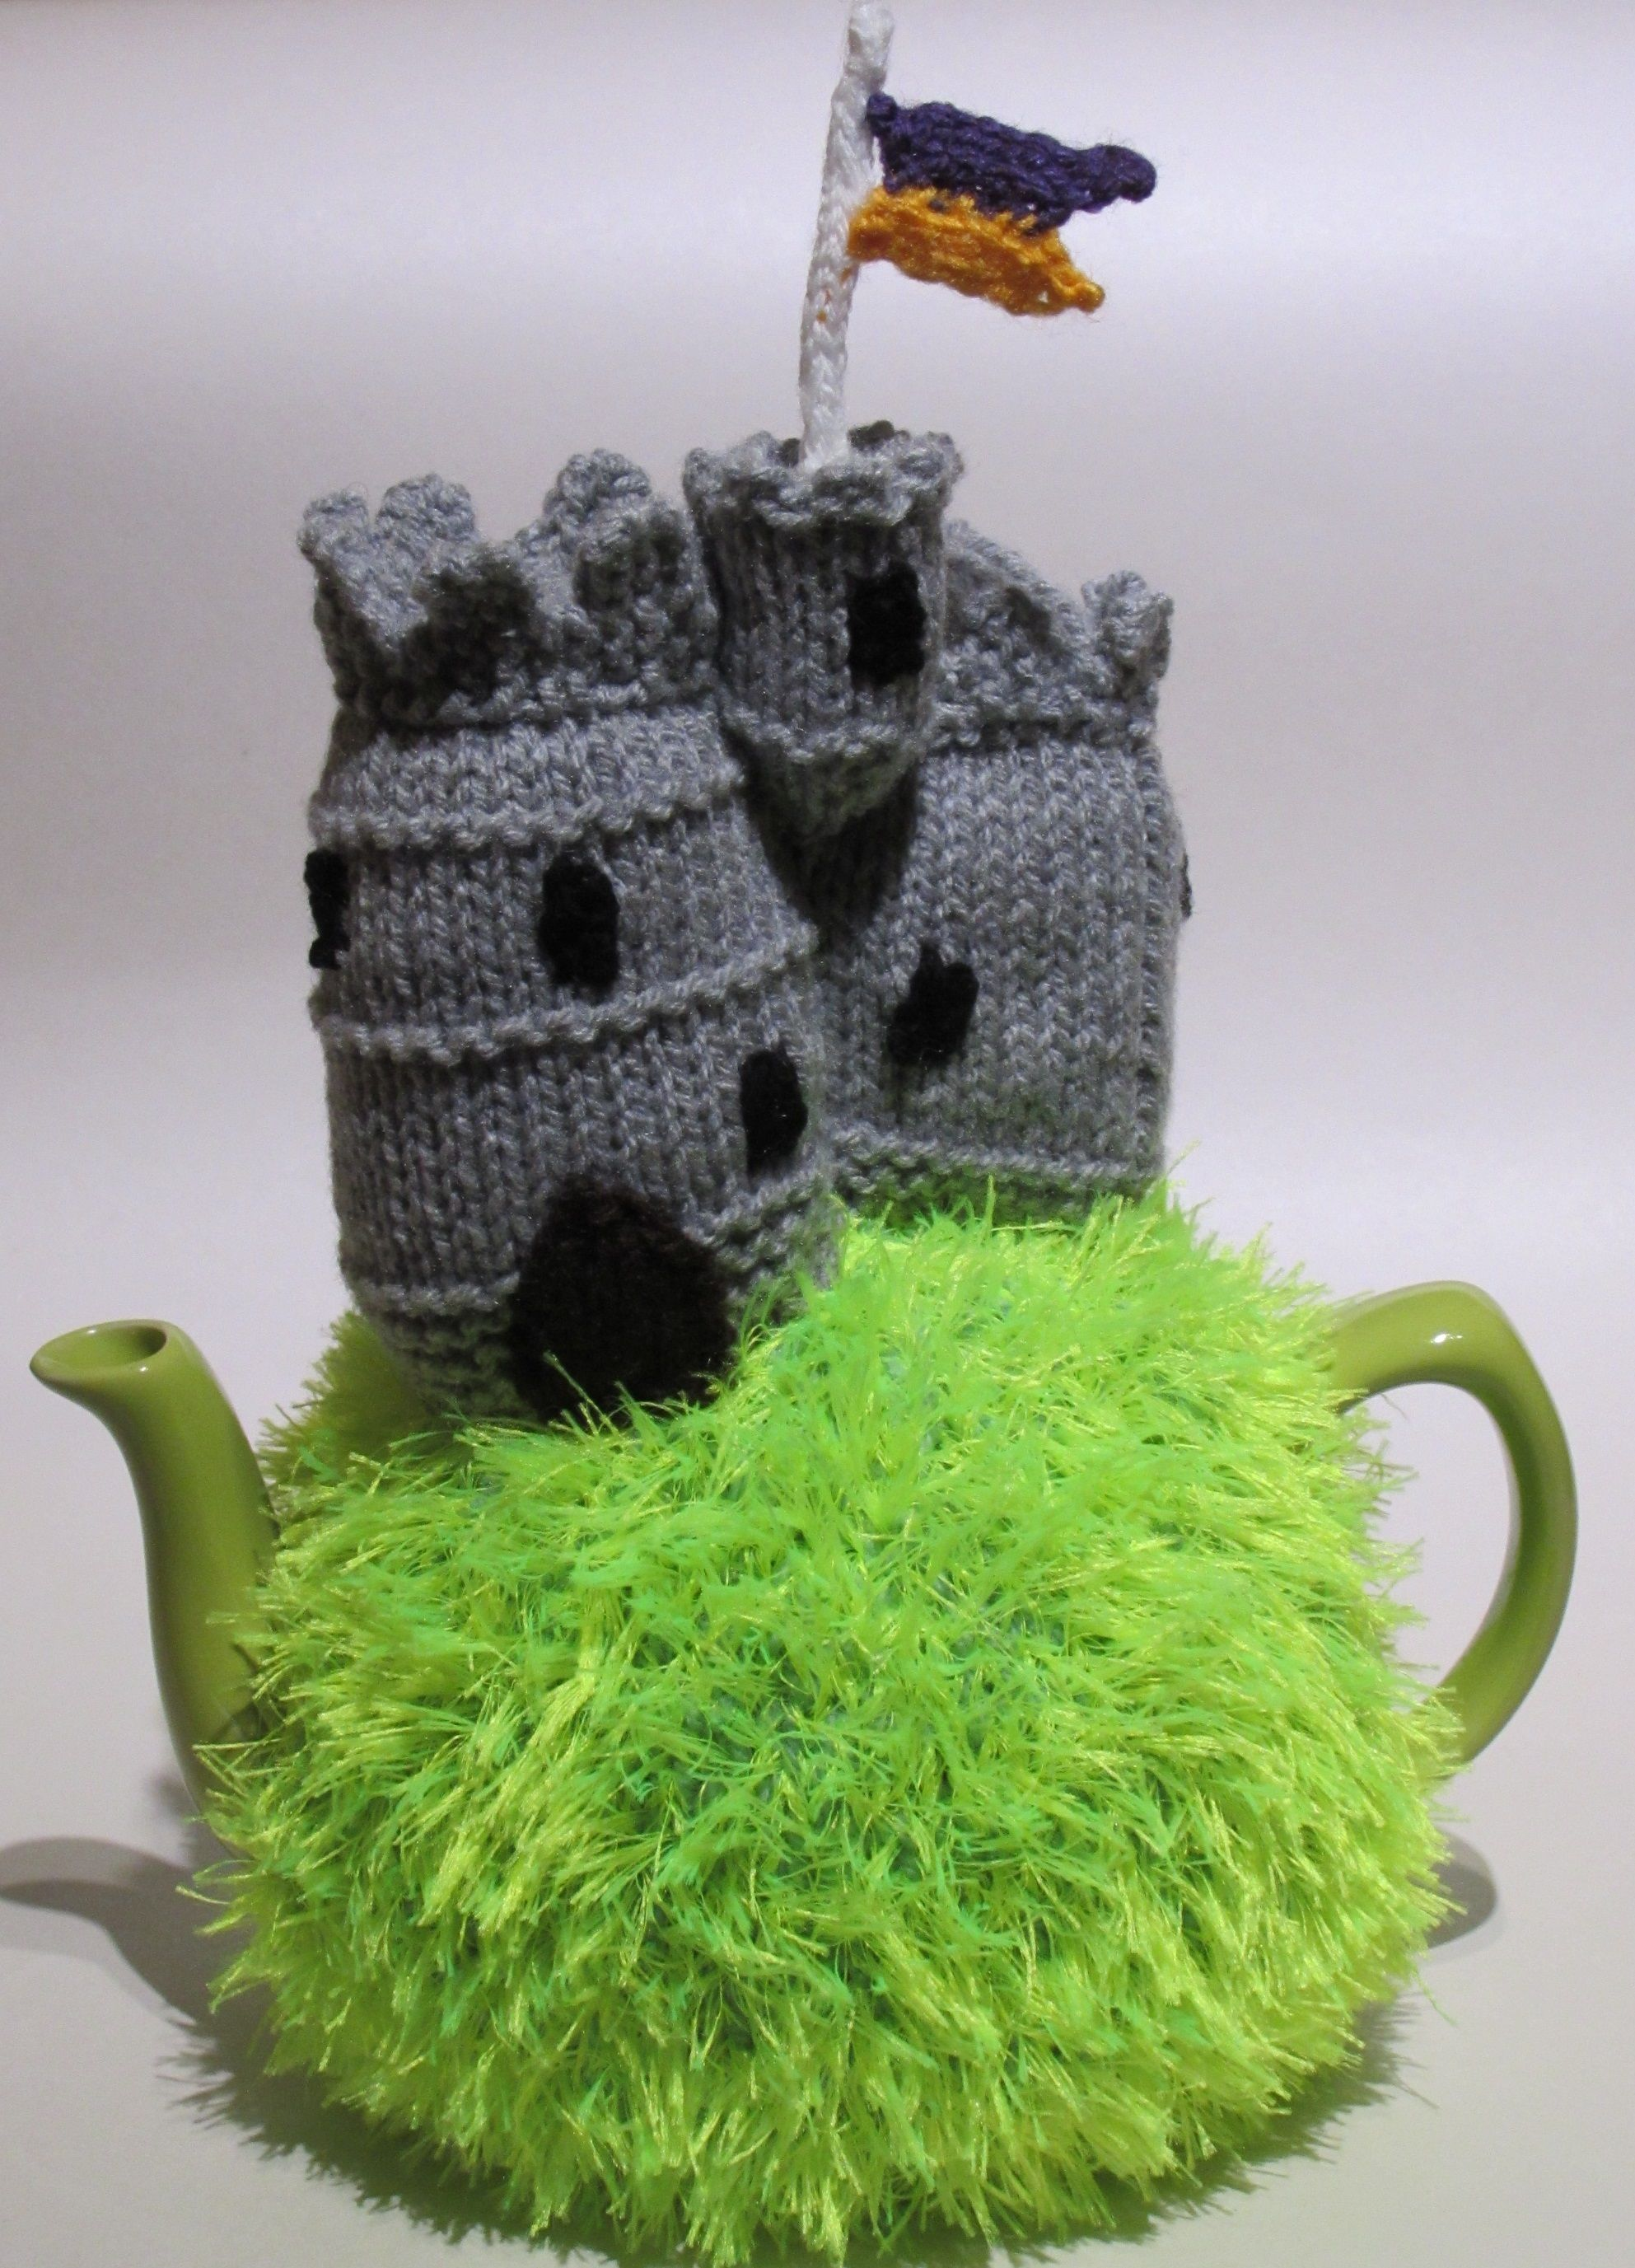 The Medieval Castle Tea Cosy is the latest tea cosy from the TeaCosyFolk range. This is an usual tea cosy with a stone built Norman castle on the top of a grassy knoll. The tea cosy and the pattern are available.... Because every man's tea cosy is his castle. http://www.teacosyfolk.co.uk/show.php?id=89